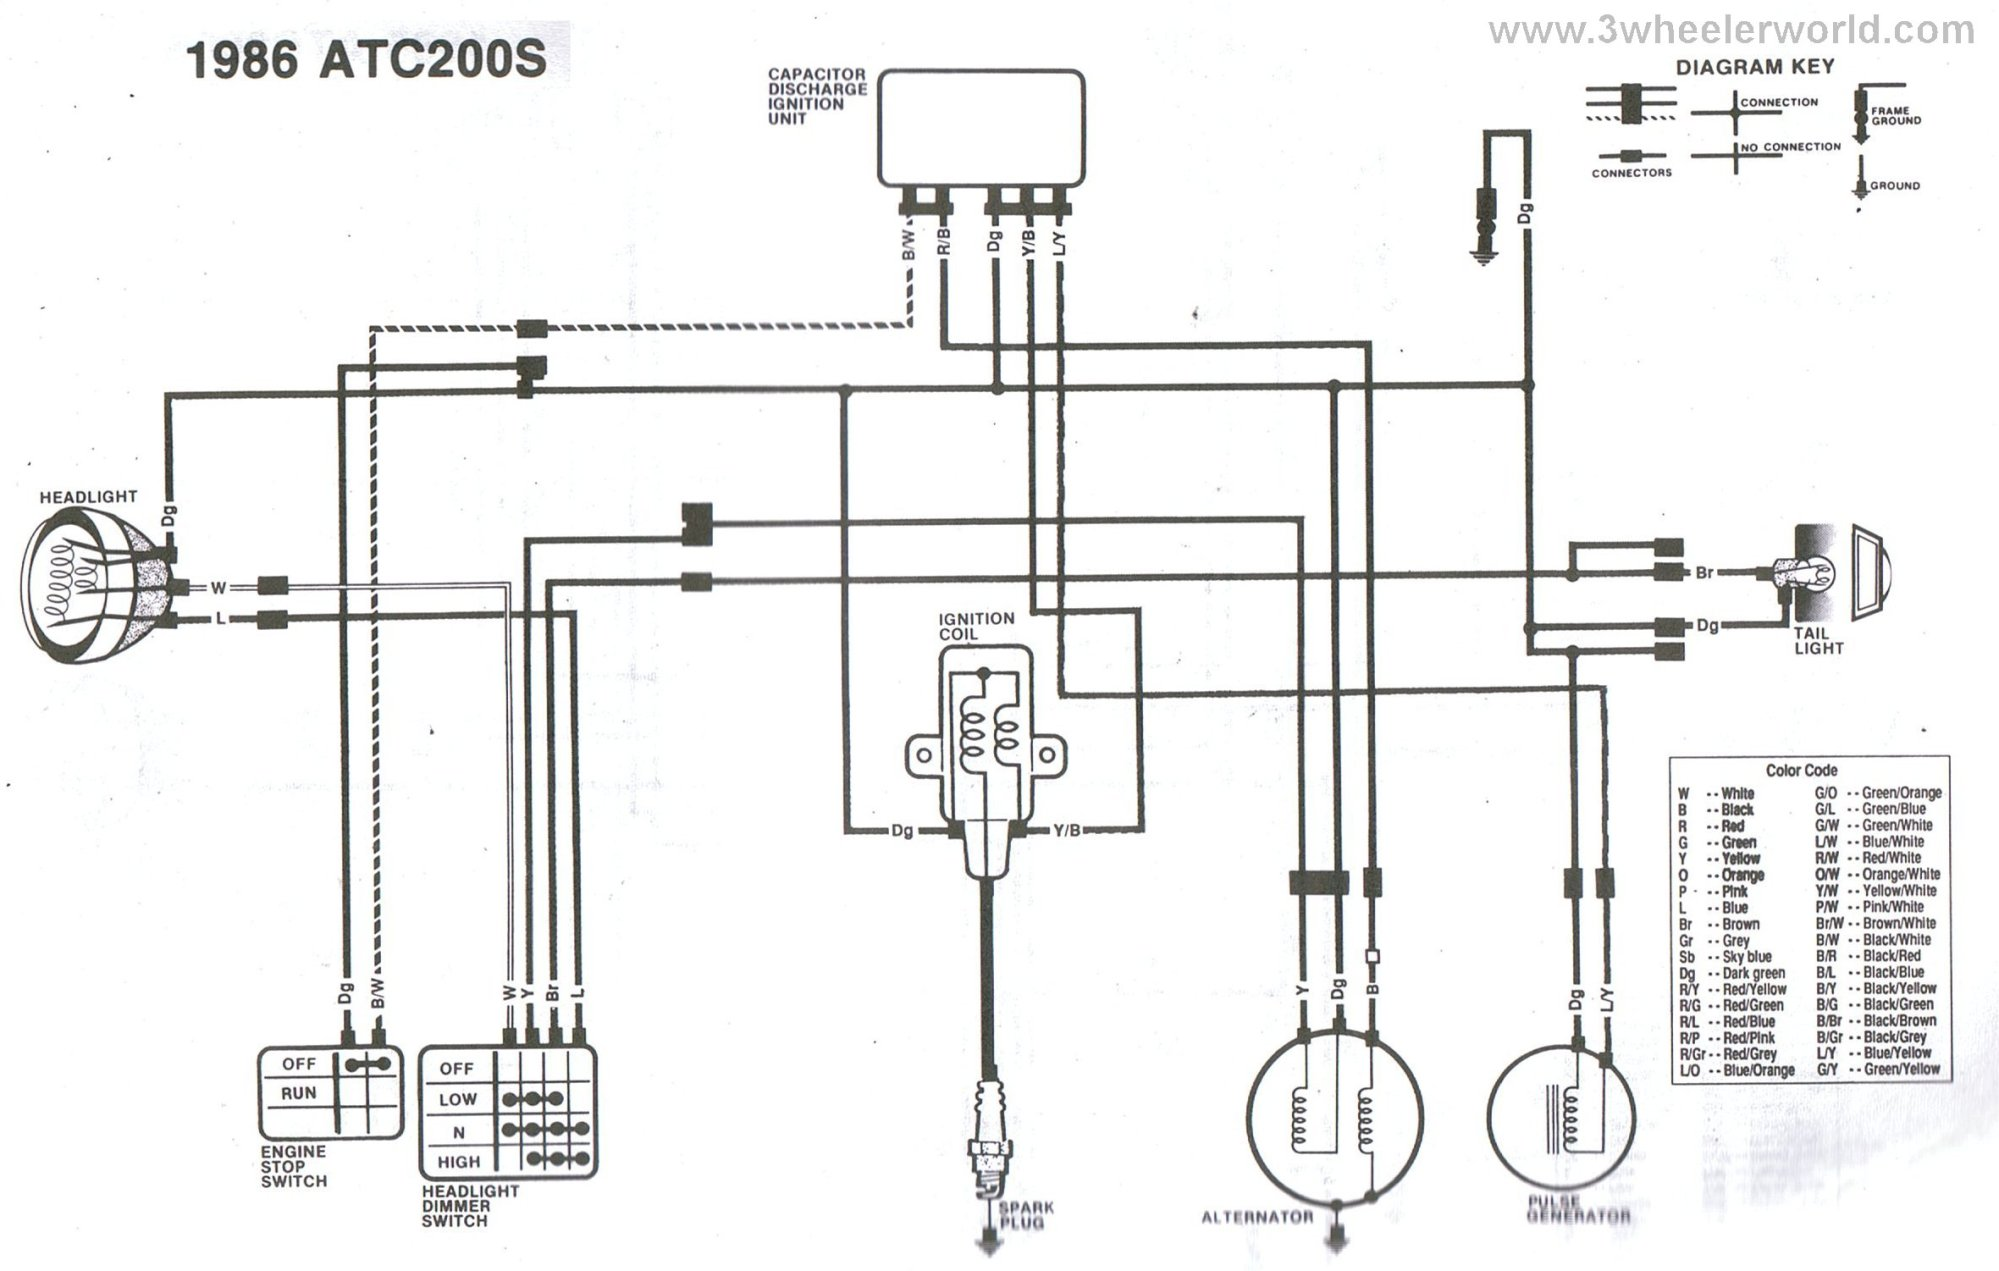 hight resolution of suzuki 230 quadrunner wiring diagram wiring diagram review suzuki lt230e quadrunner wiring diagram my wiring diagram